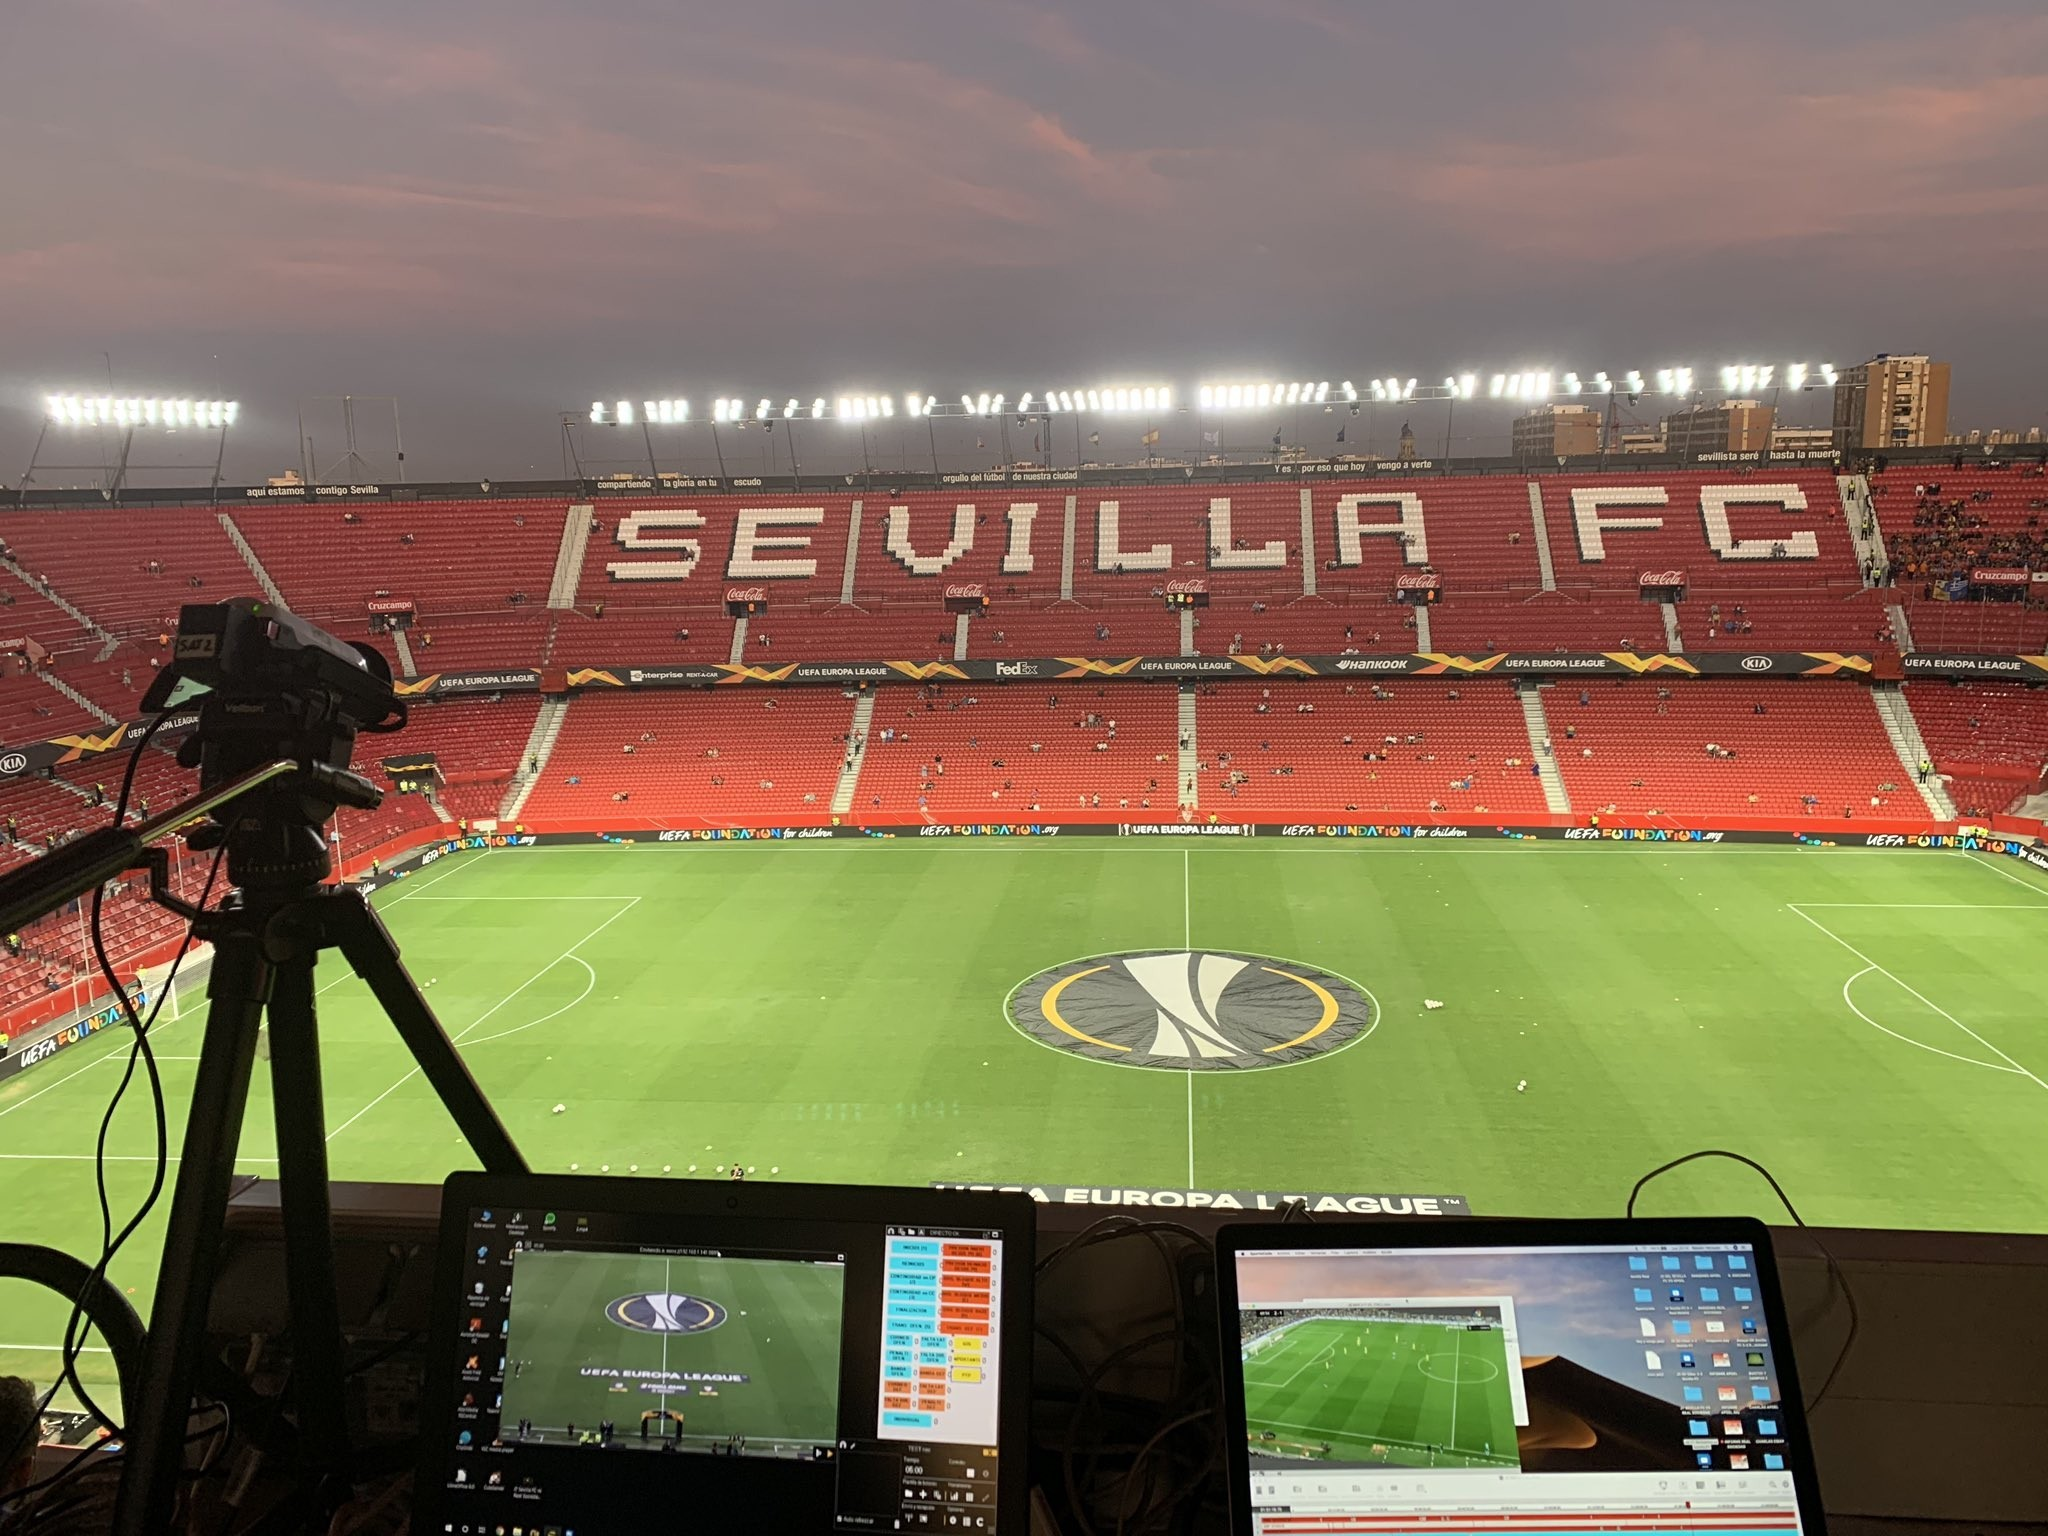 Nacsport and Sportscode at Sevilla FC